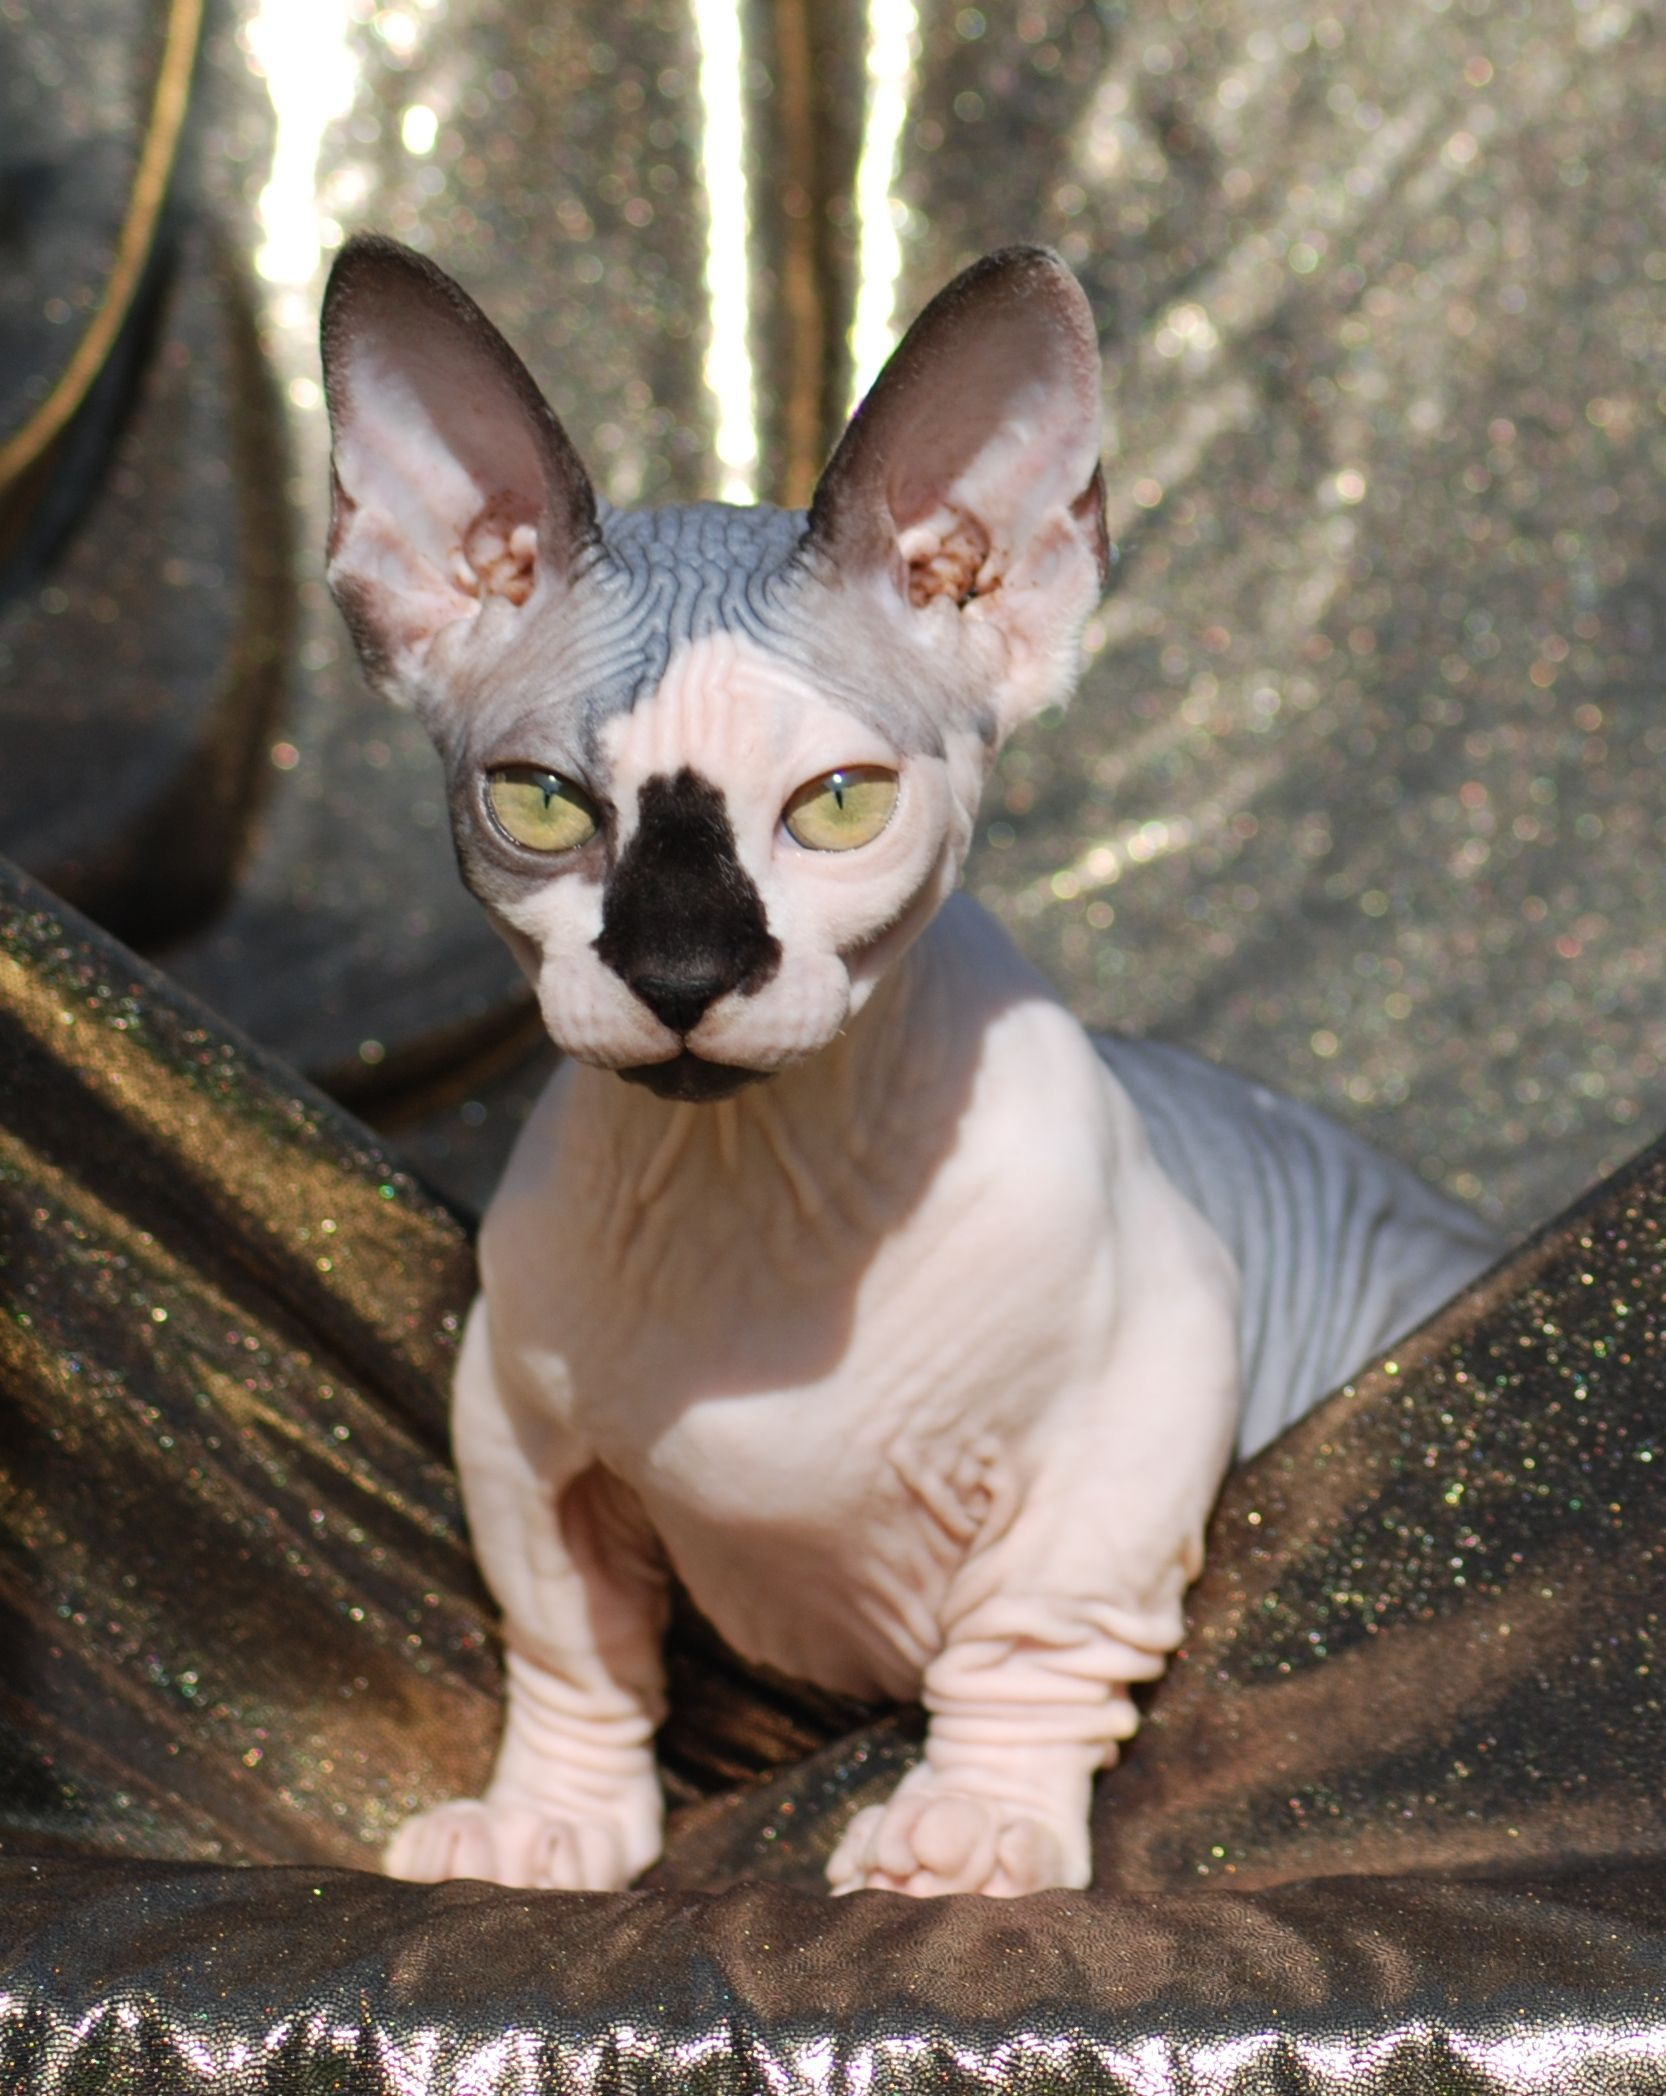 The Bambino Is A Breed Of Cat That Was Created As A Cross Between The Sphynx And The Munchkin Breeds The Word Bambino Bambino Cat Cat Breeds Munchkin Kitten